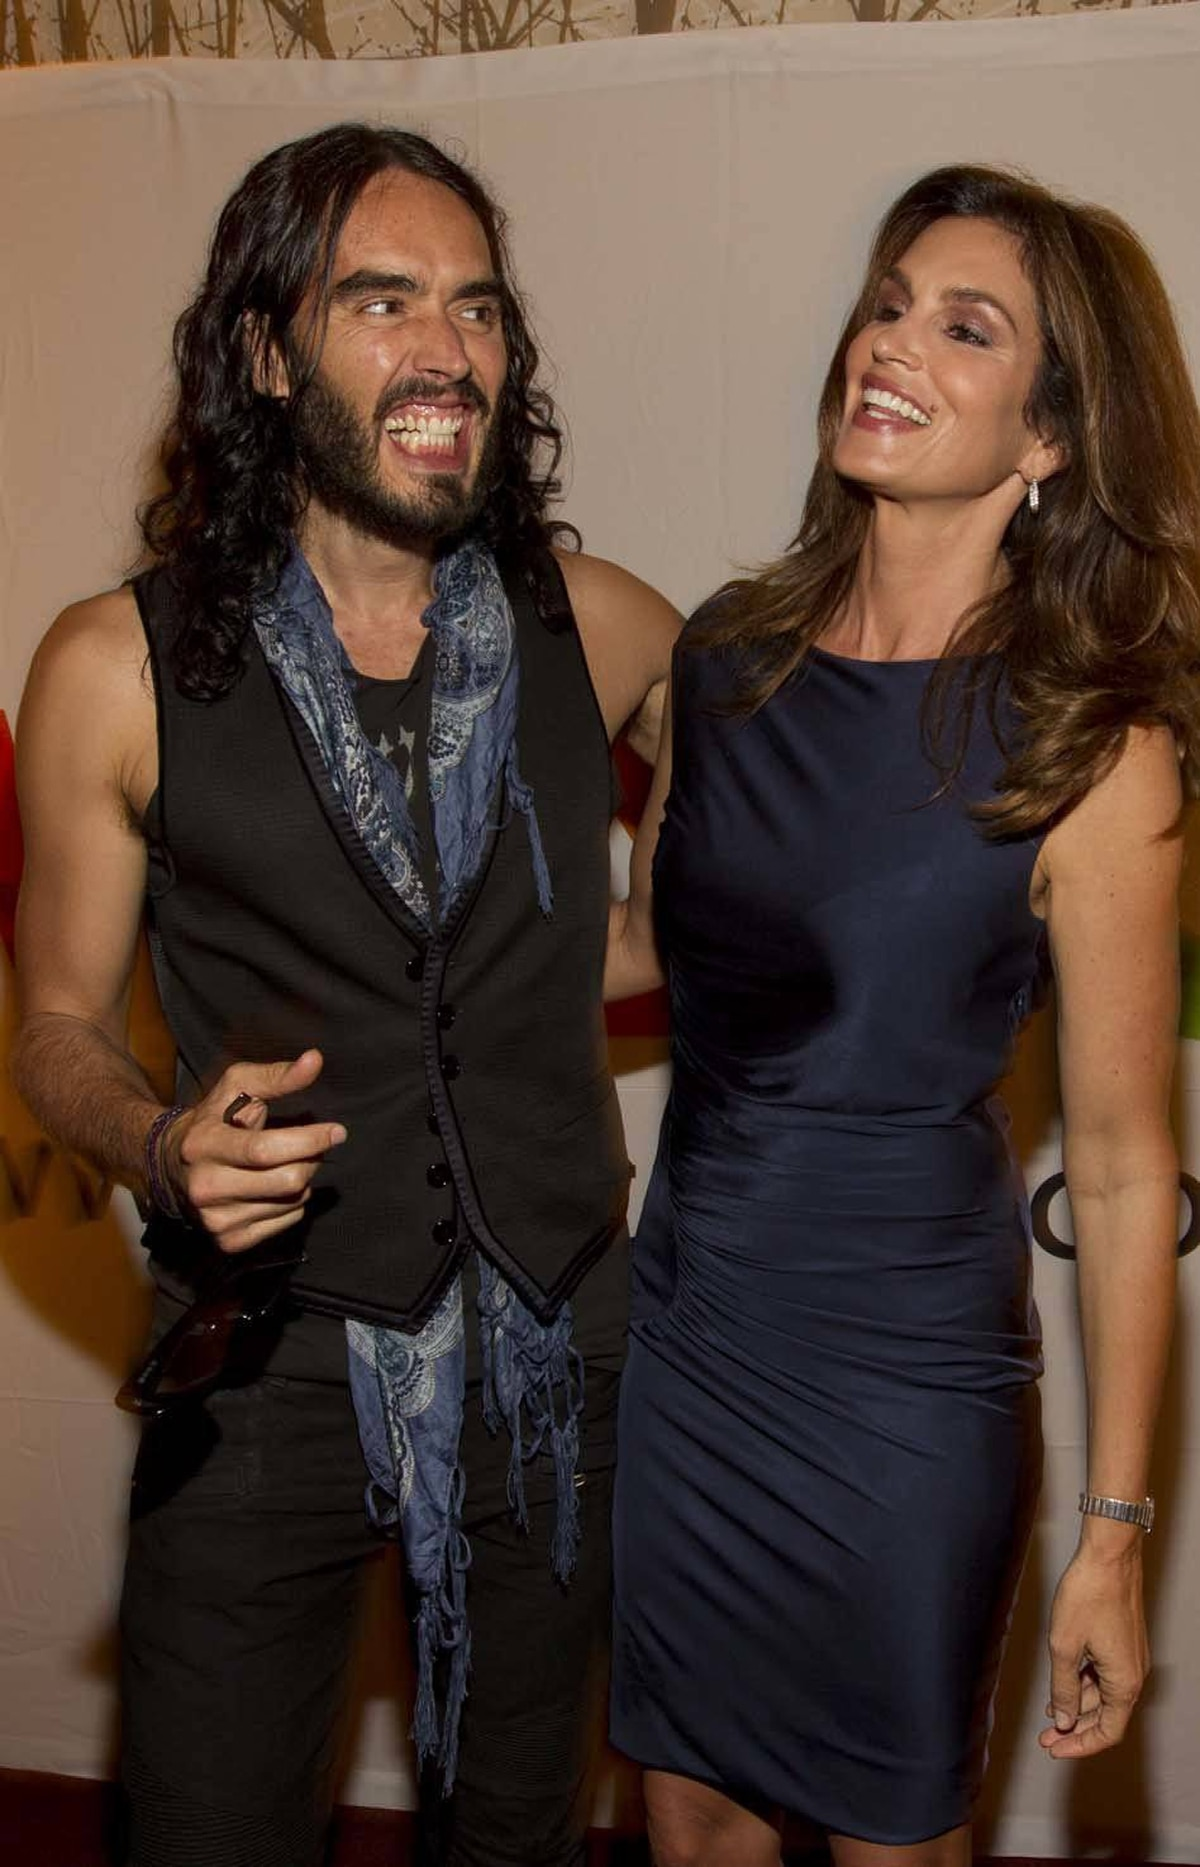 Cindy Crawford does her best to see the humour in it as Russell Brand explains to her how freakin' hilarious it was when he photo-bombed the president of Mexico.